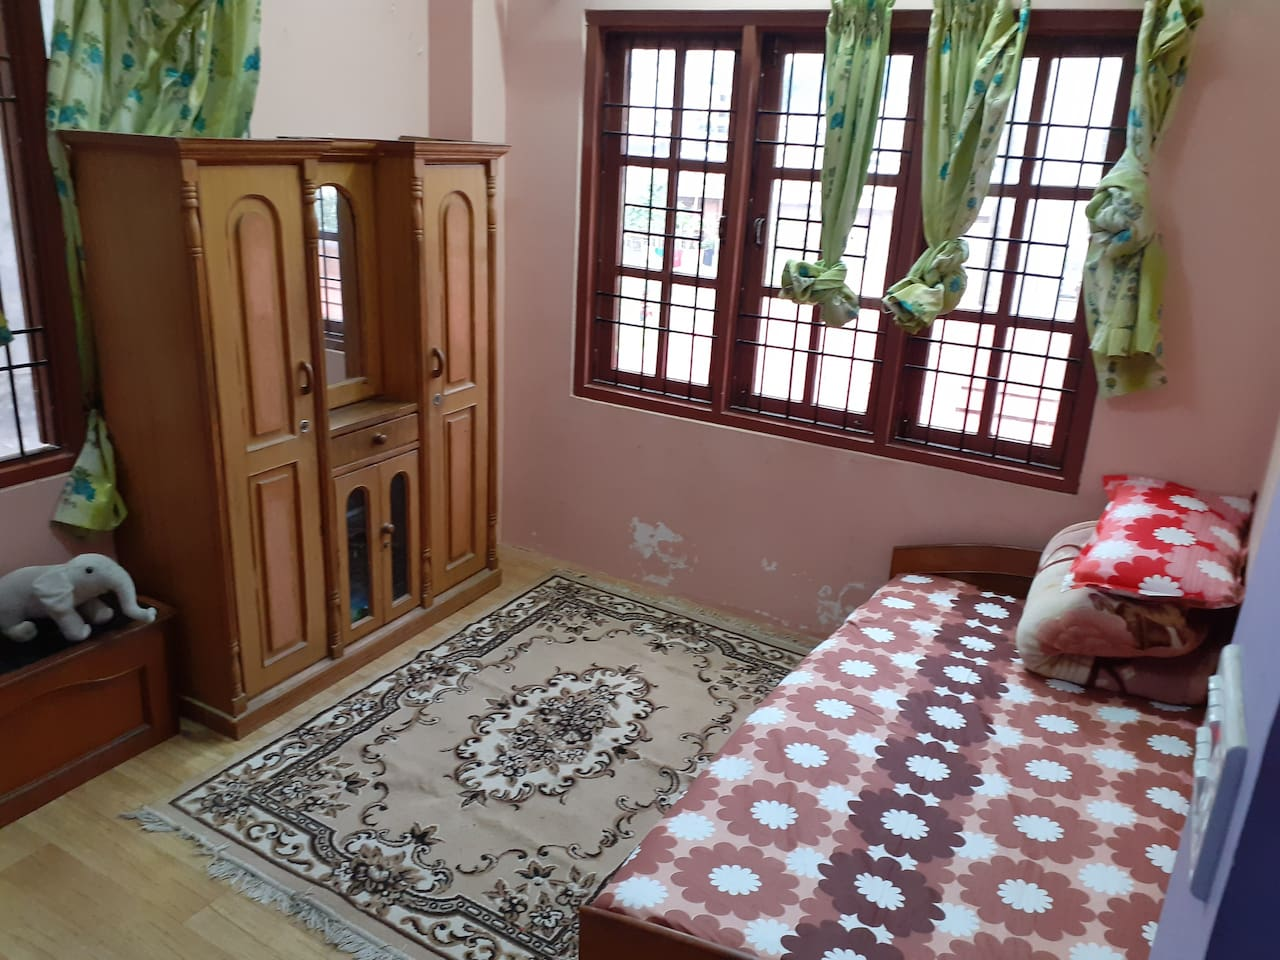 Peaceful environment ,high speed wifi, good hospitality, spacious, lot of parking area, family environment, near bus stop just 1 minute walk, hospita HAMES is near, its spacious for kid, hygienic food, neat and clean house as well as good neighbor's.